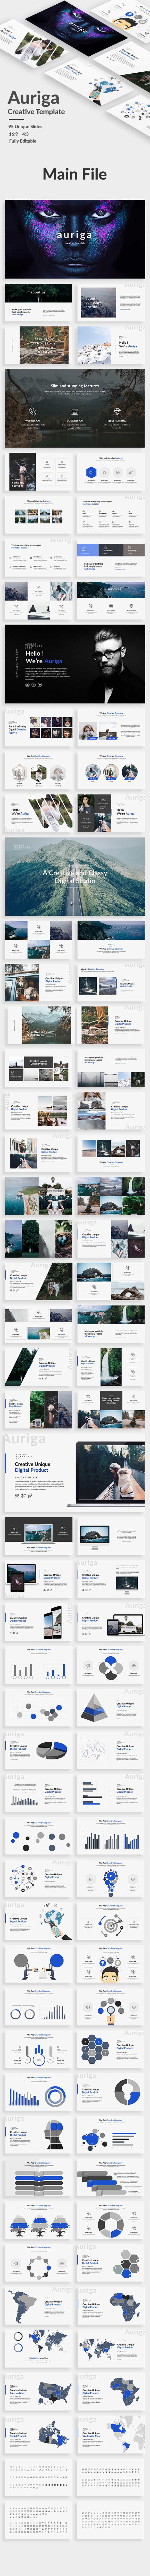 Auriga Creative Keynote Template - Creative Keynote Templates